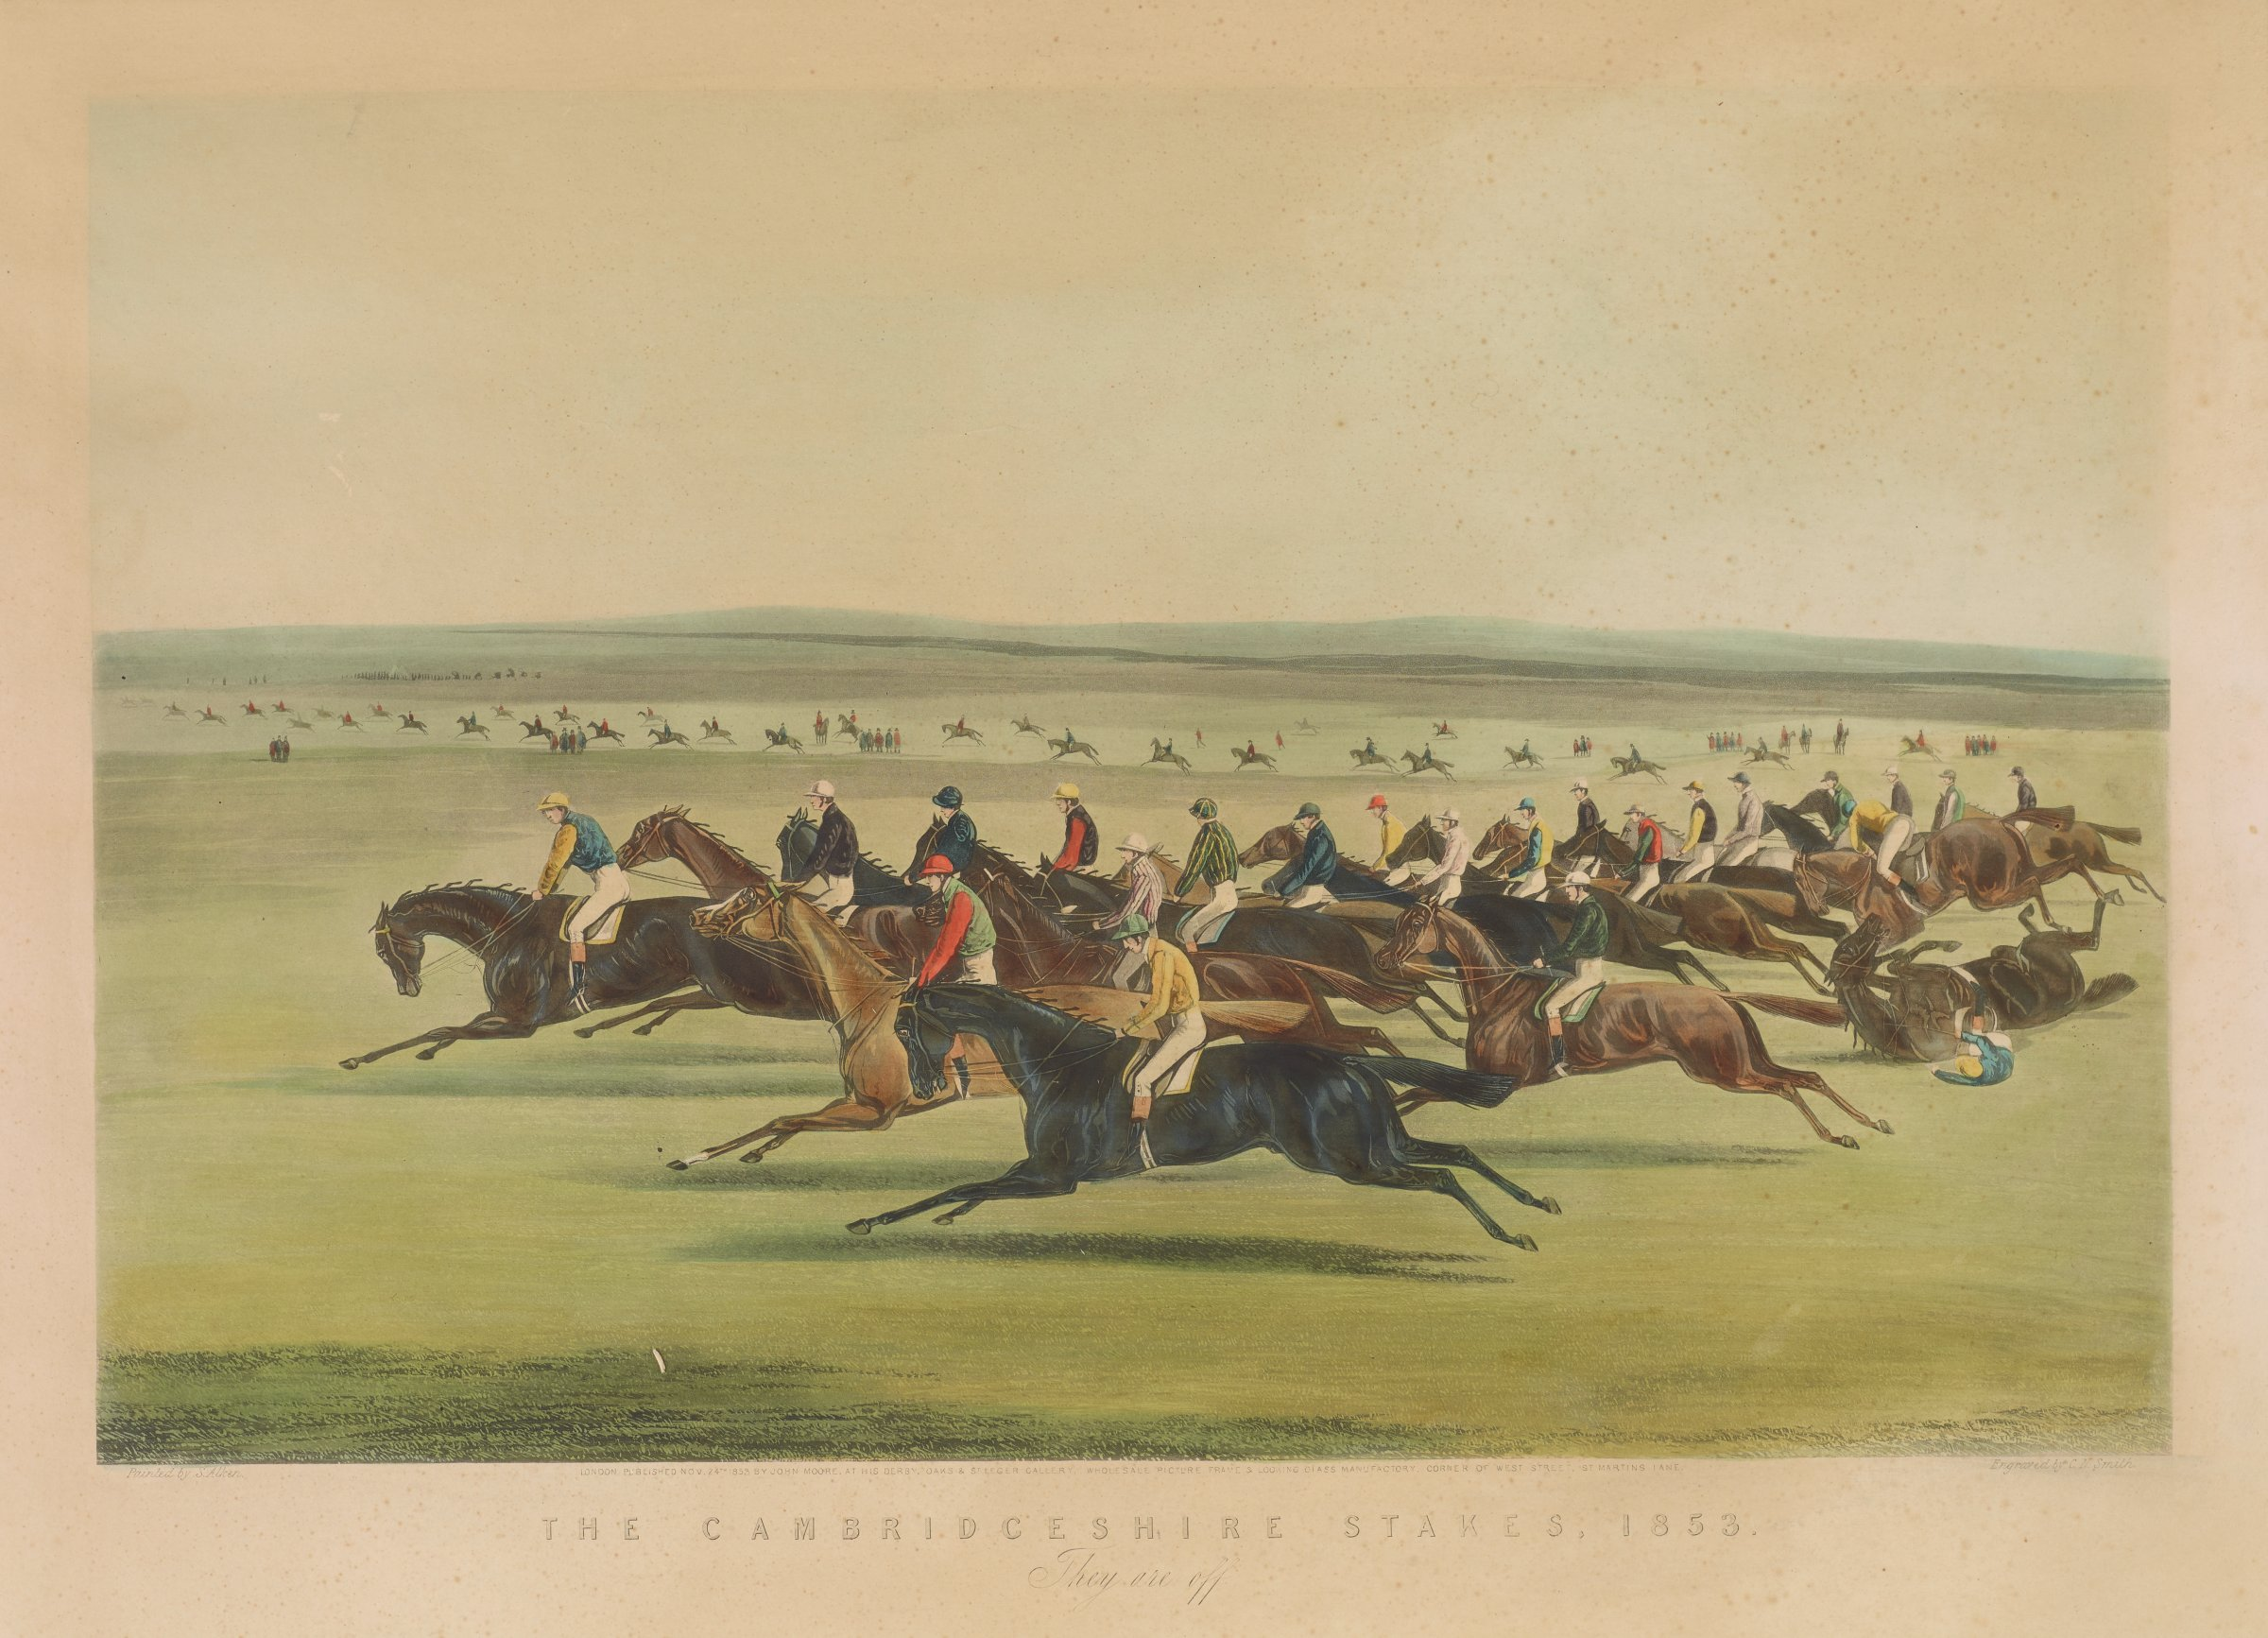 Scene of a group of jockeys riding horses. One horse and jockey fall on the ground on the right. In the middleground, more riders are seen in a vast, open landscape.